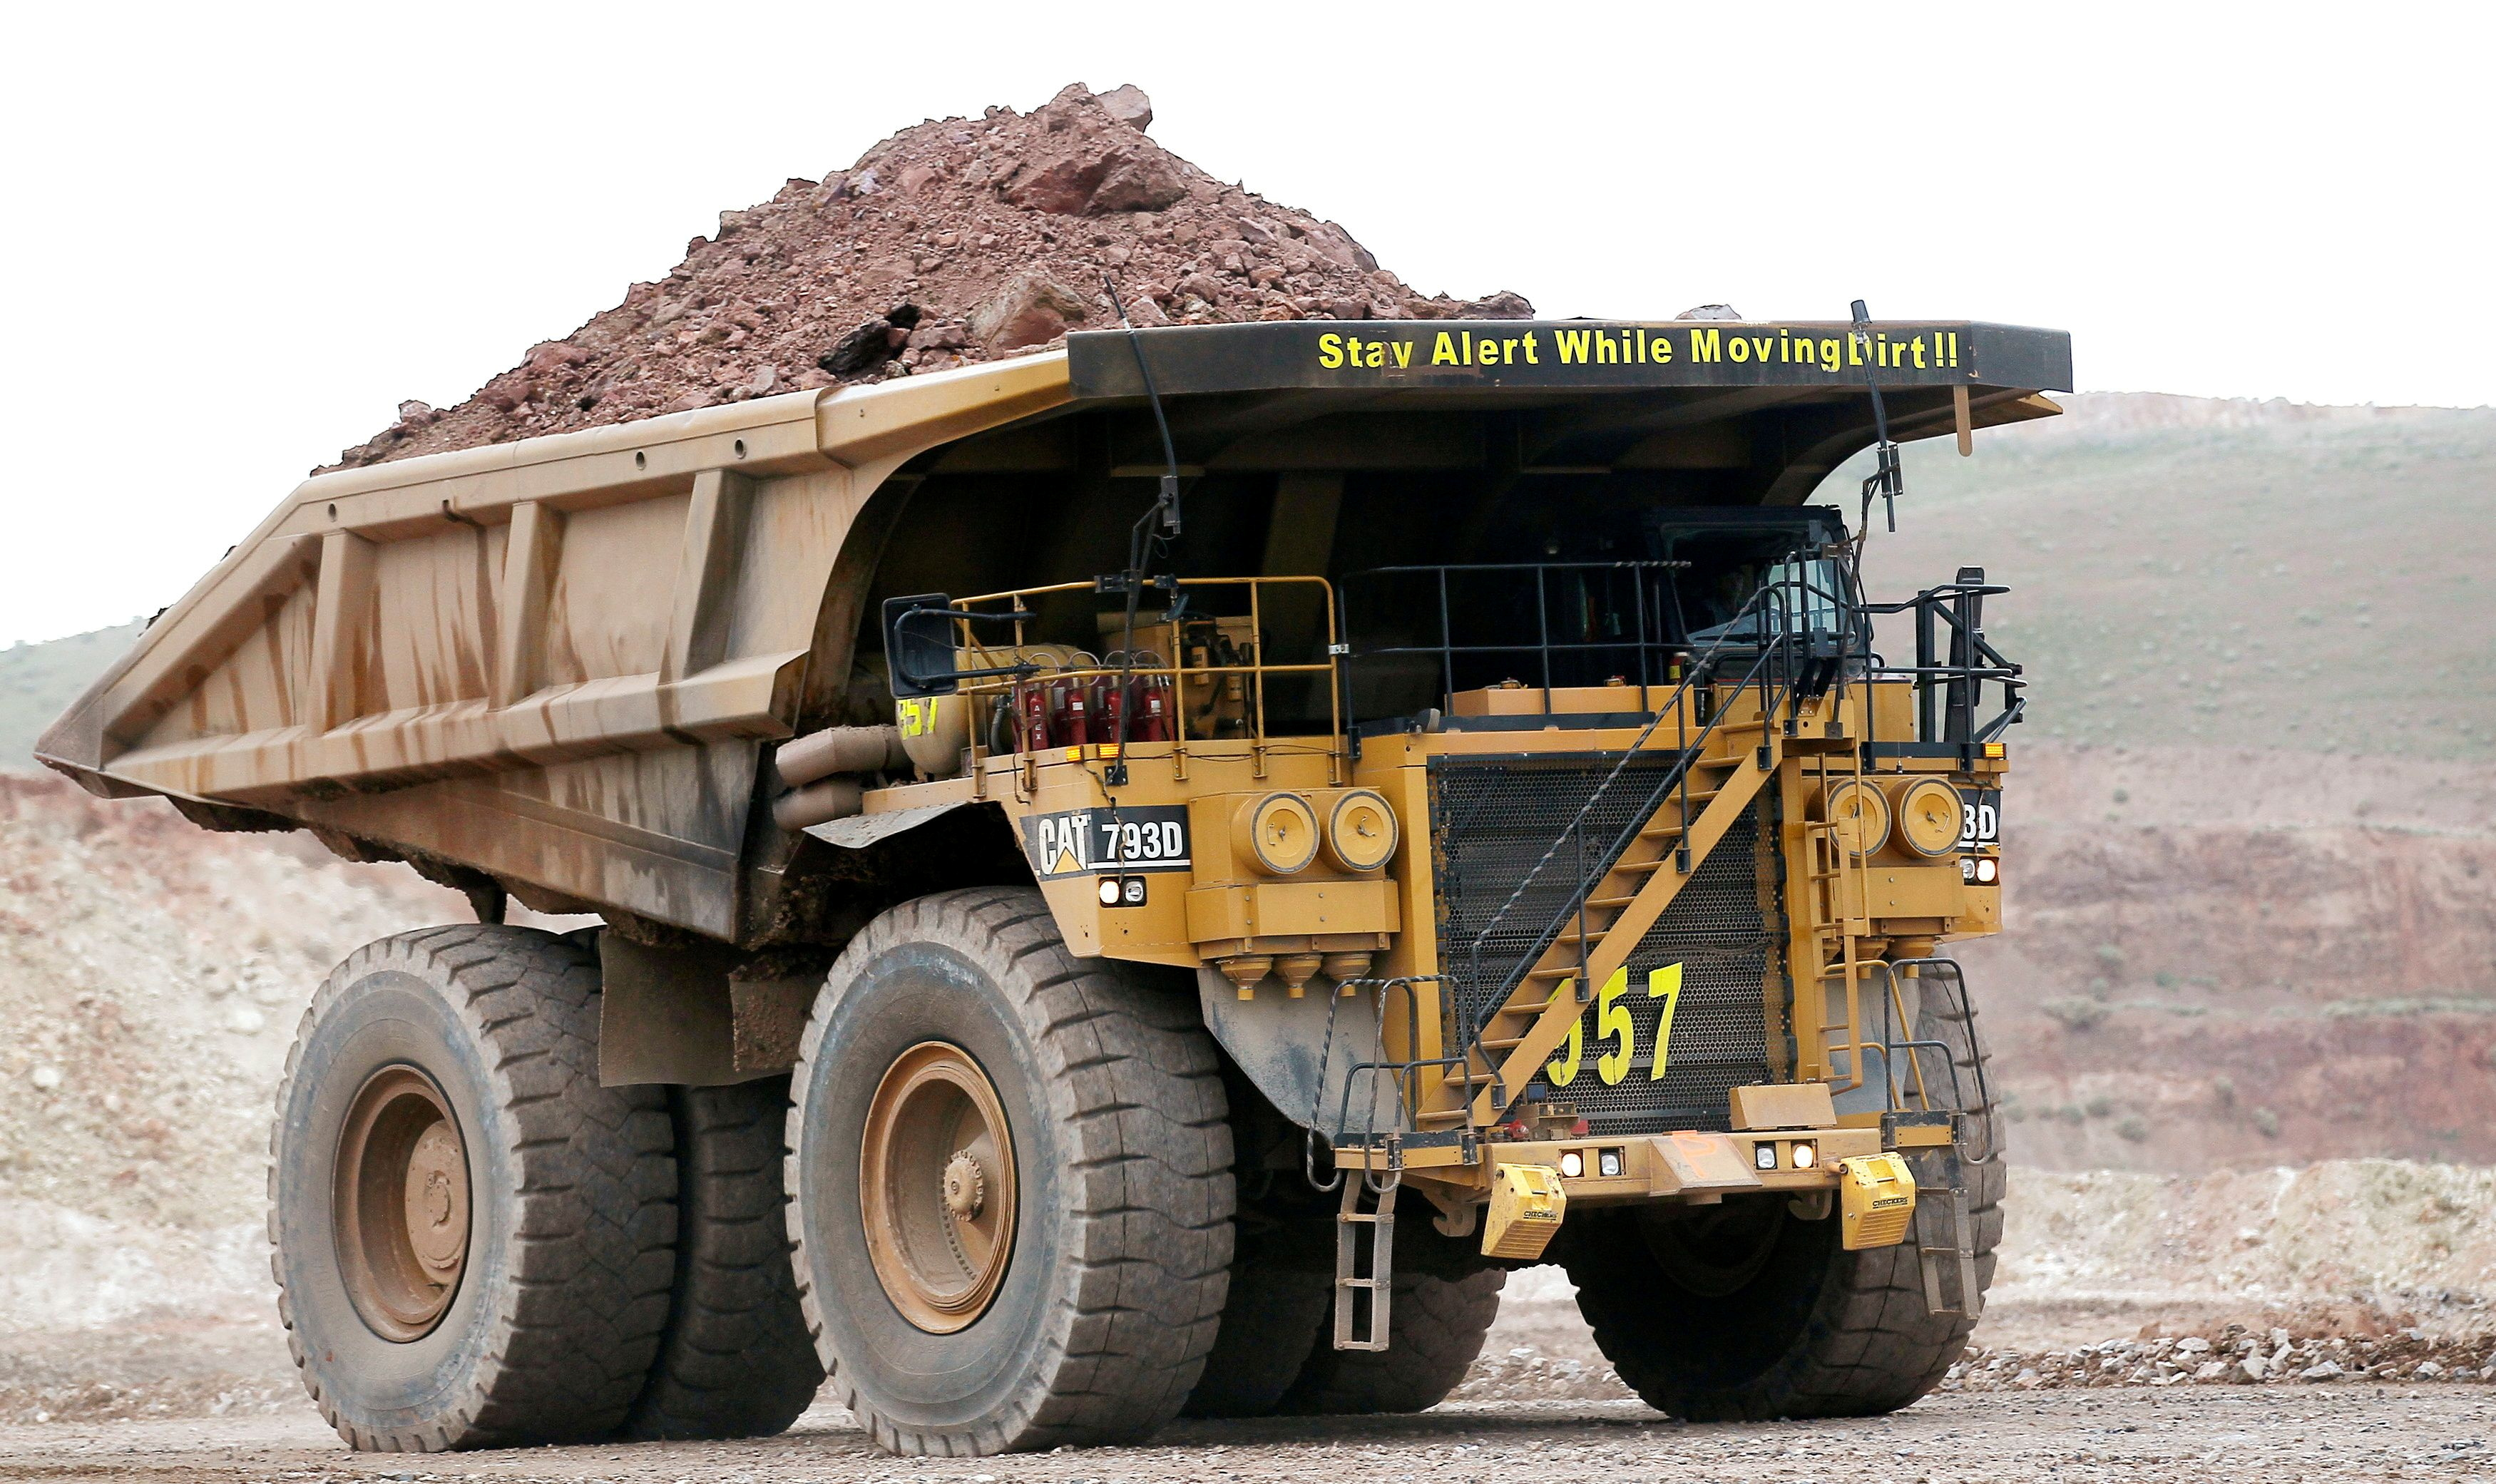 A haul truck carries a full load at a mine operation near Elko, Nevada May 21, 2014.  REUTERS/Rick Wilking/File Photo